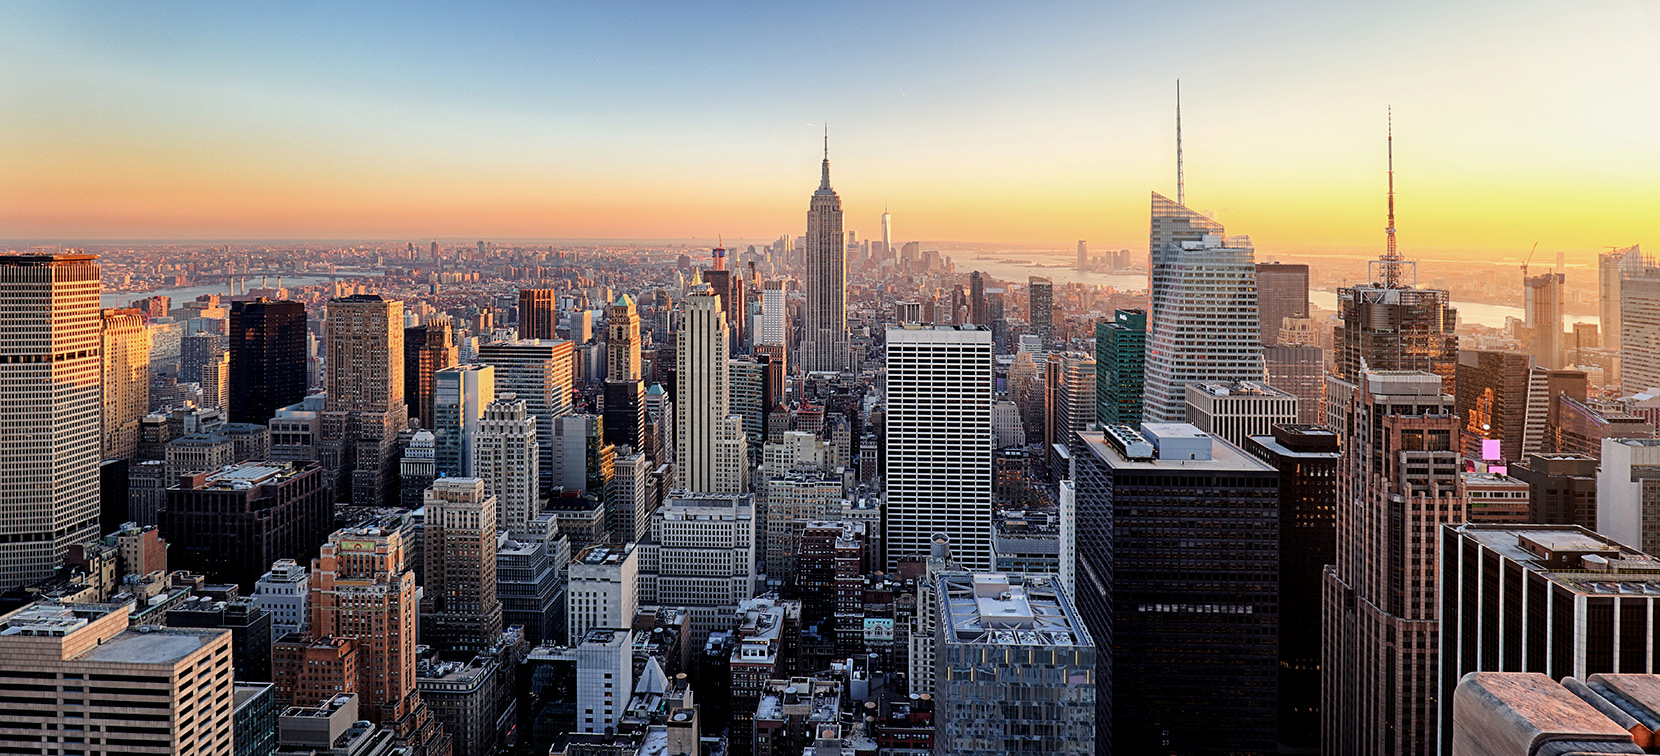 New York City Commercial Construction News